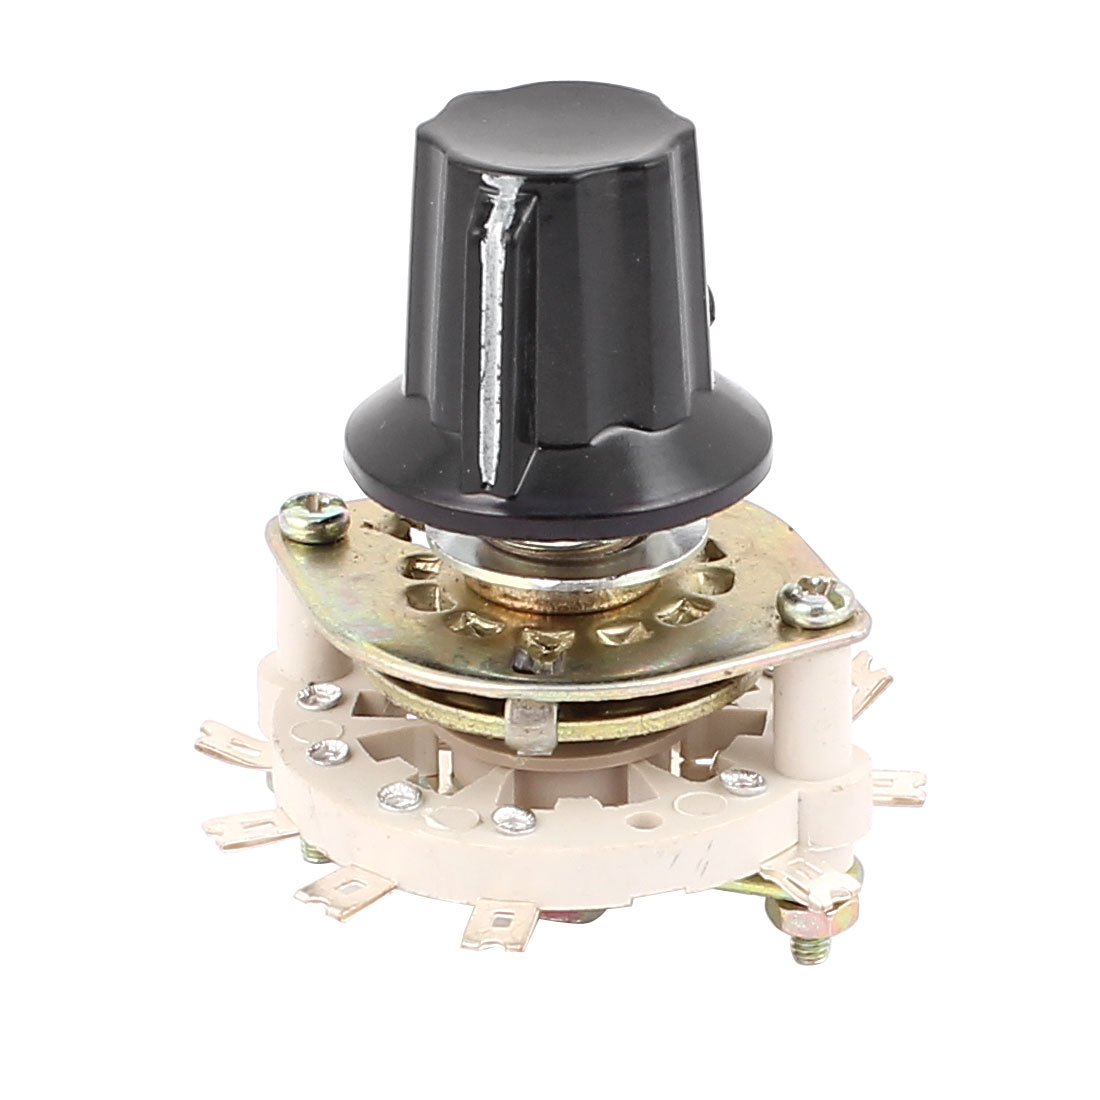 KCZ 2 Pole 4 Throw 6mm Shaft Band Channel Rotary Switch Selector w Cap